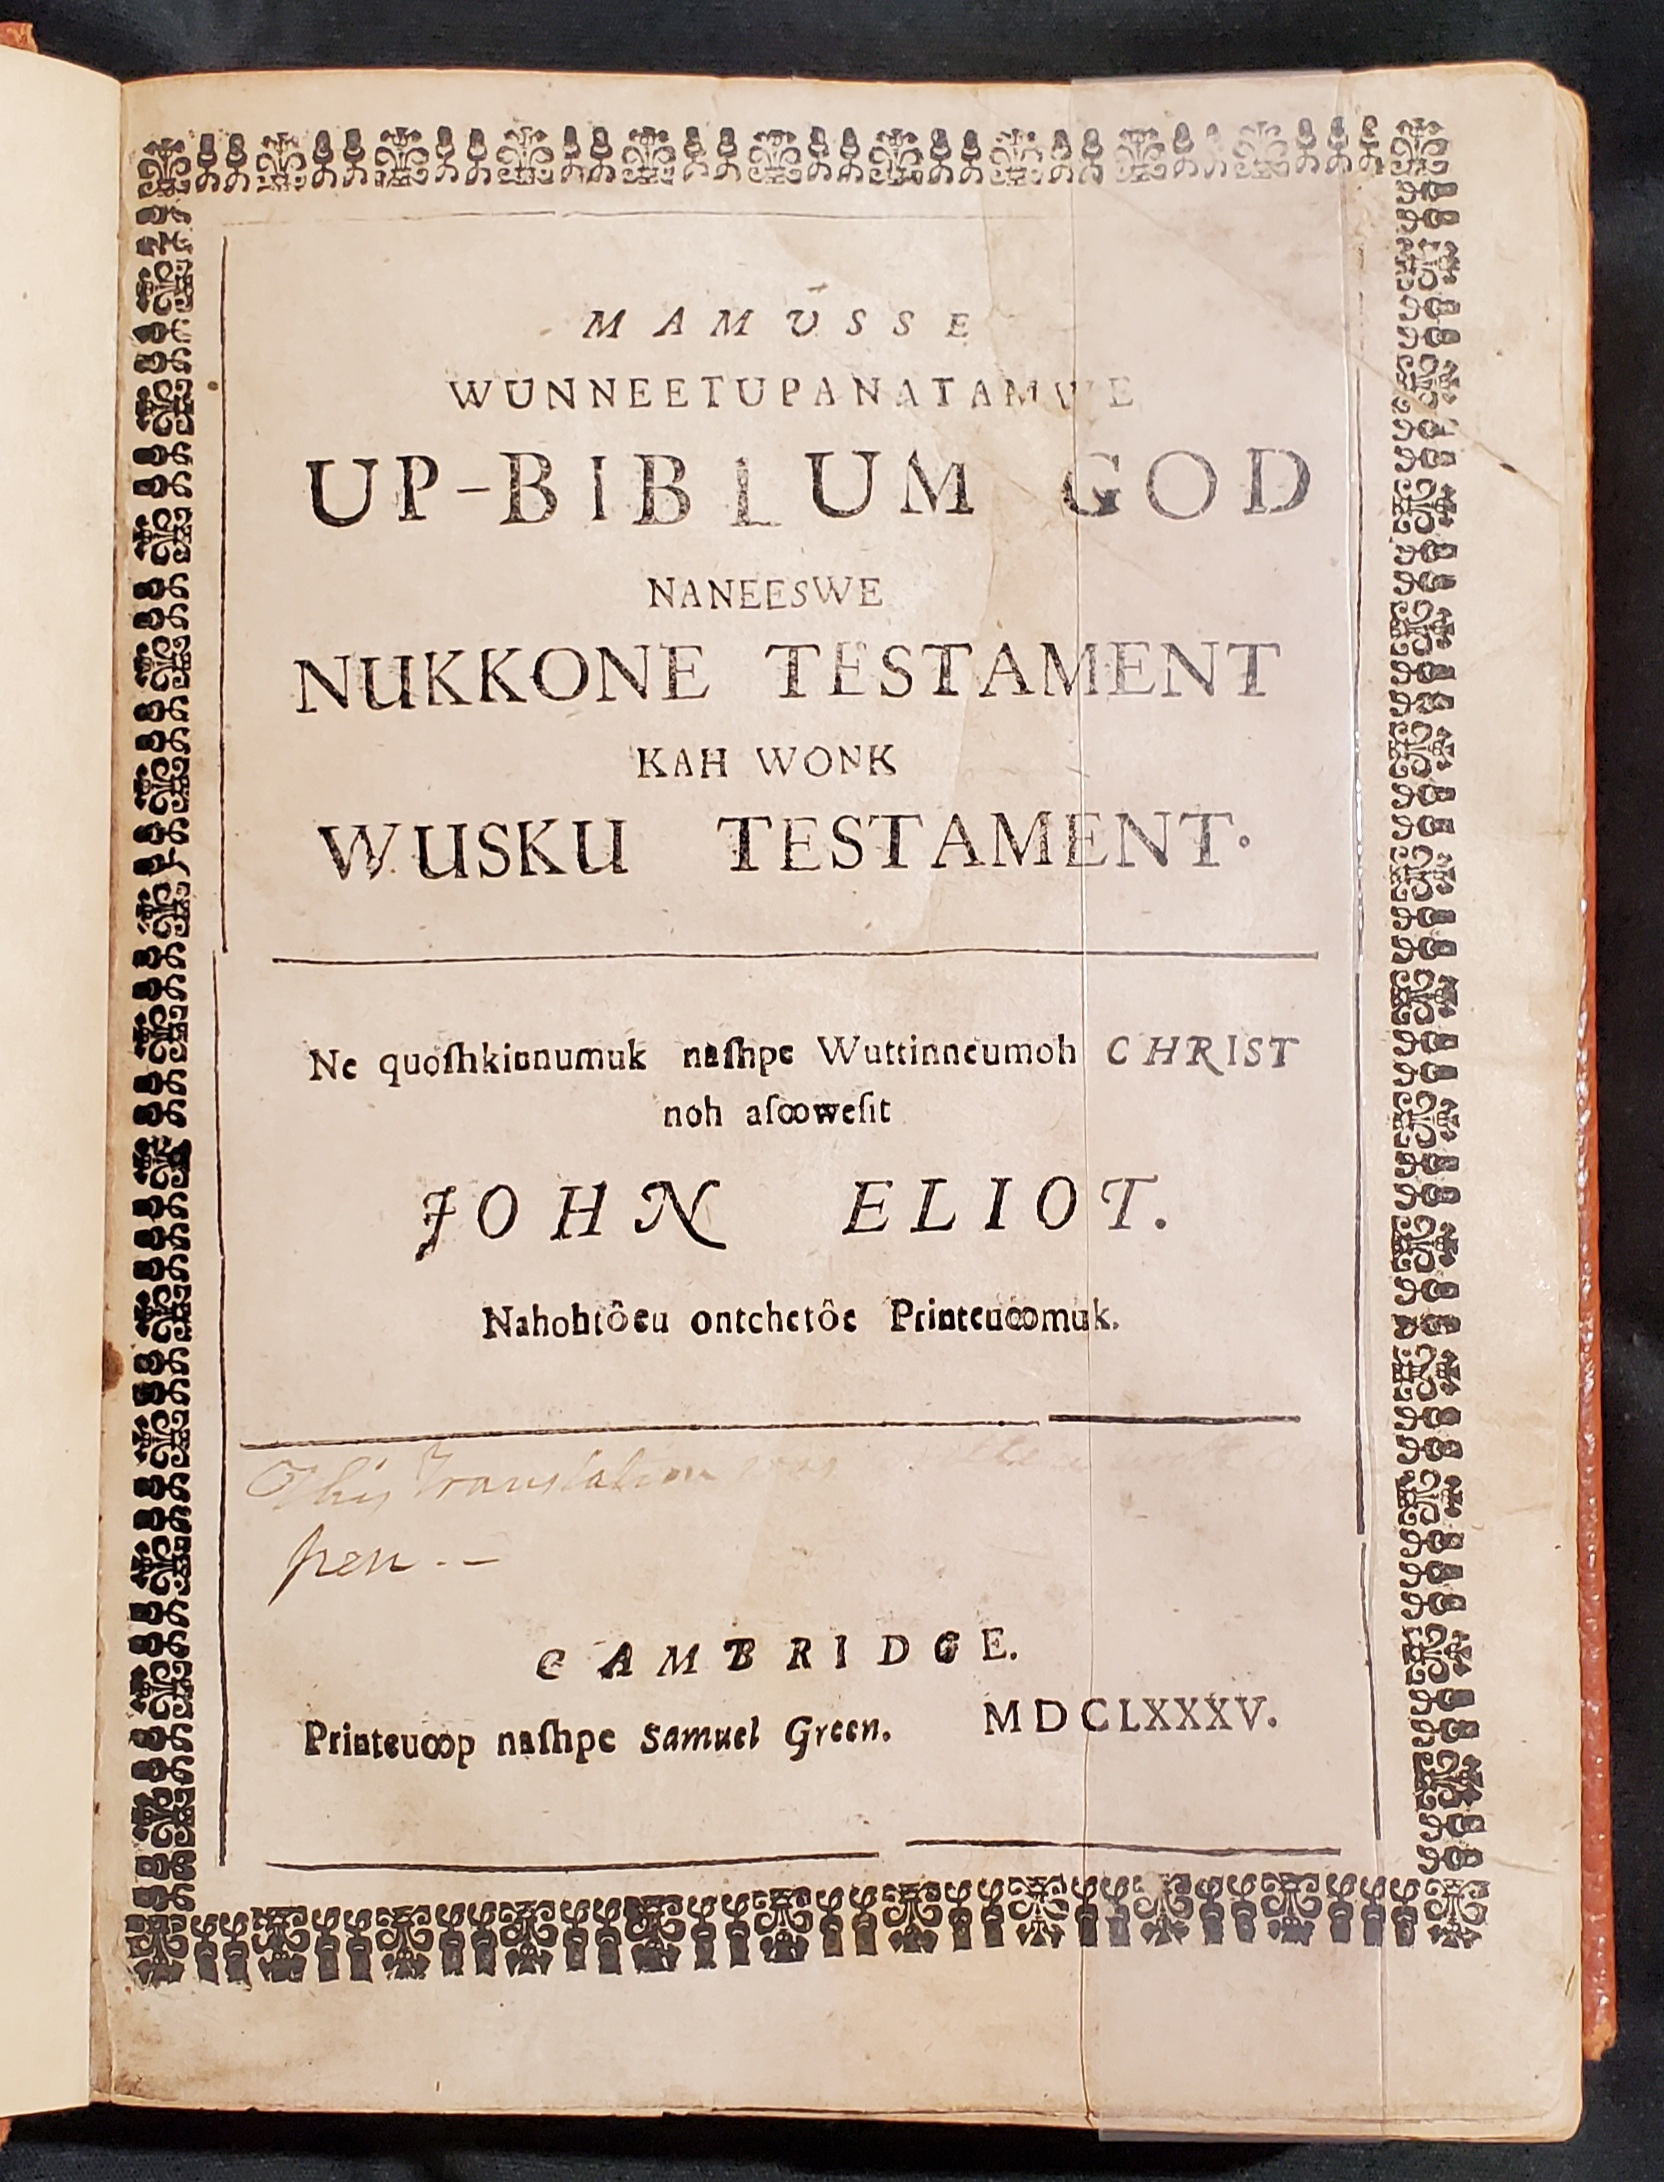 Title page of the 1685 edition of John Eliot's bible. It is written in Algonquian and lists the Old Testament and New Testament.